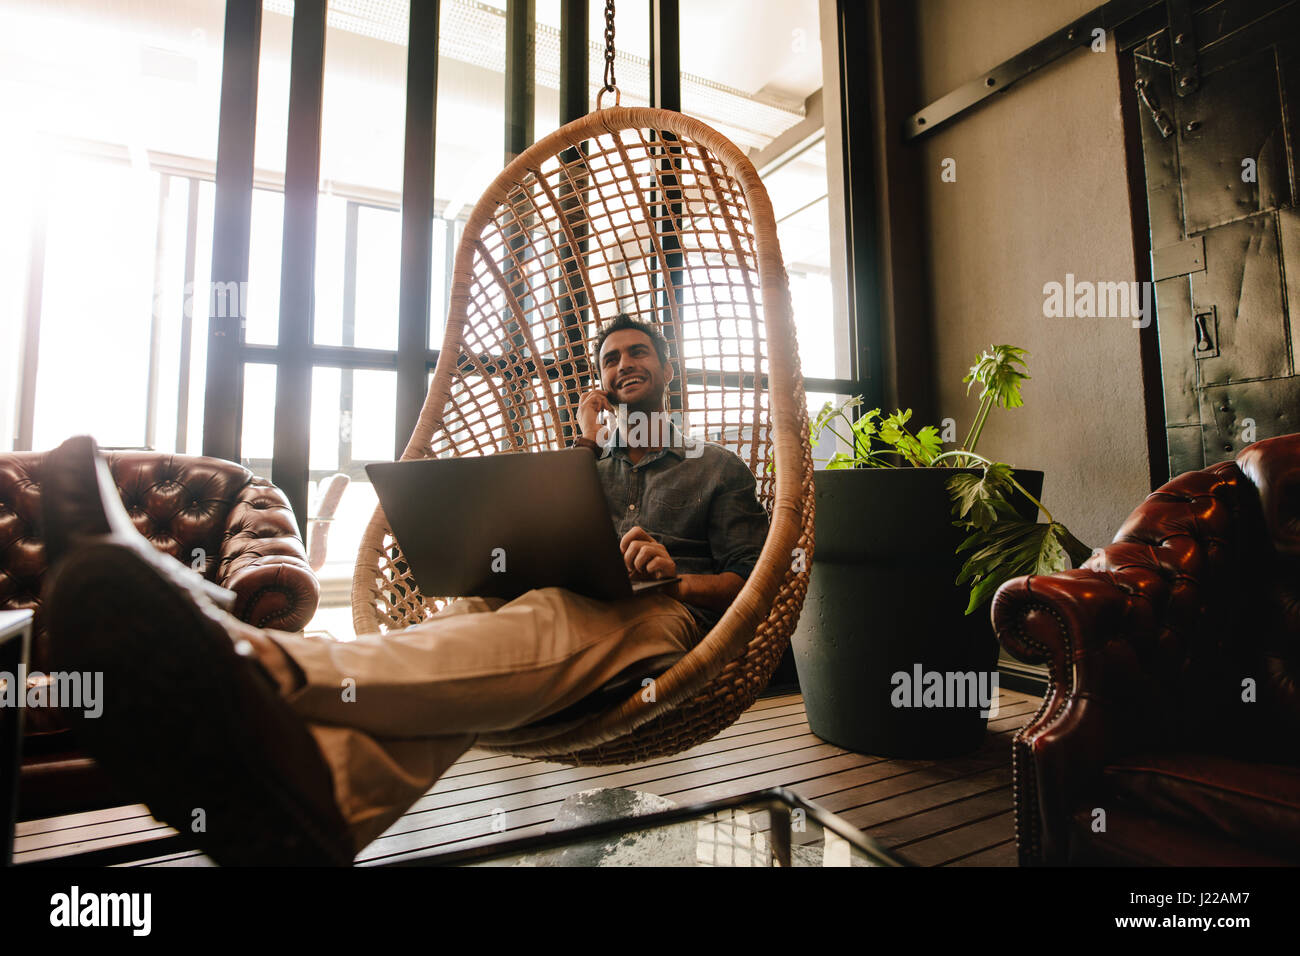 Young man sitting on a wicker hanging chair in office lounge with laptop and talking on mobile phone. Business man - Stock Image